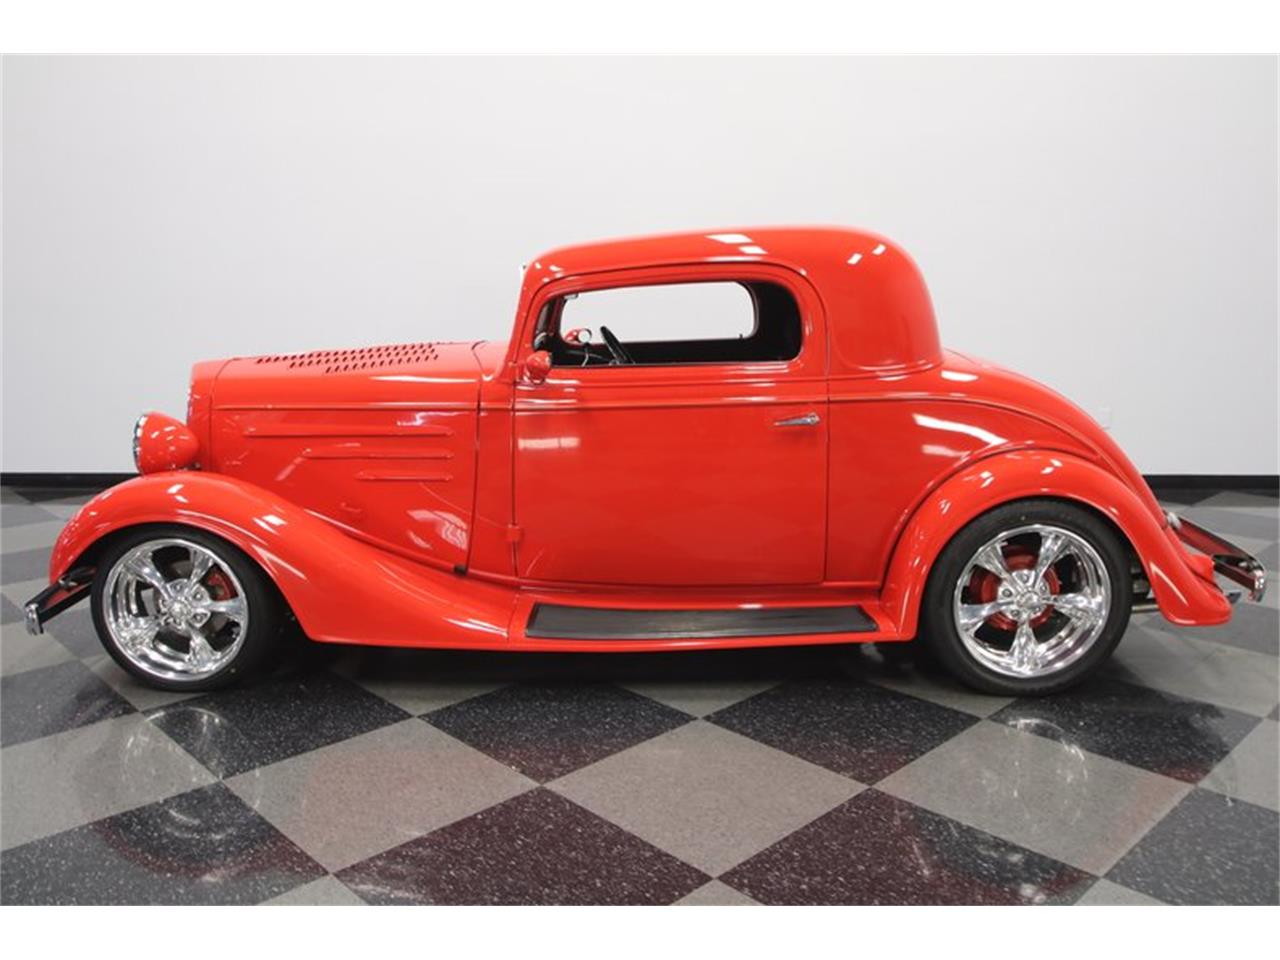 1934 Chevrolet 3-Window Coupe for sale in Lutz, FL – photo 7